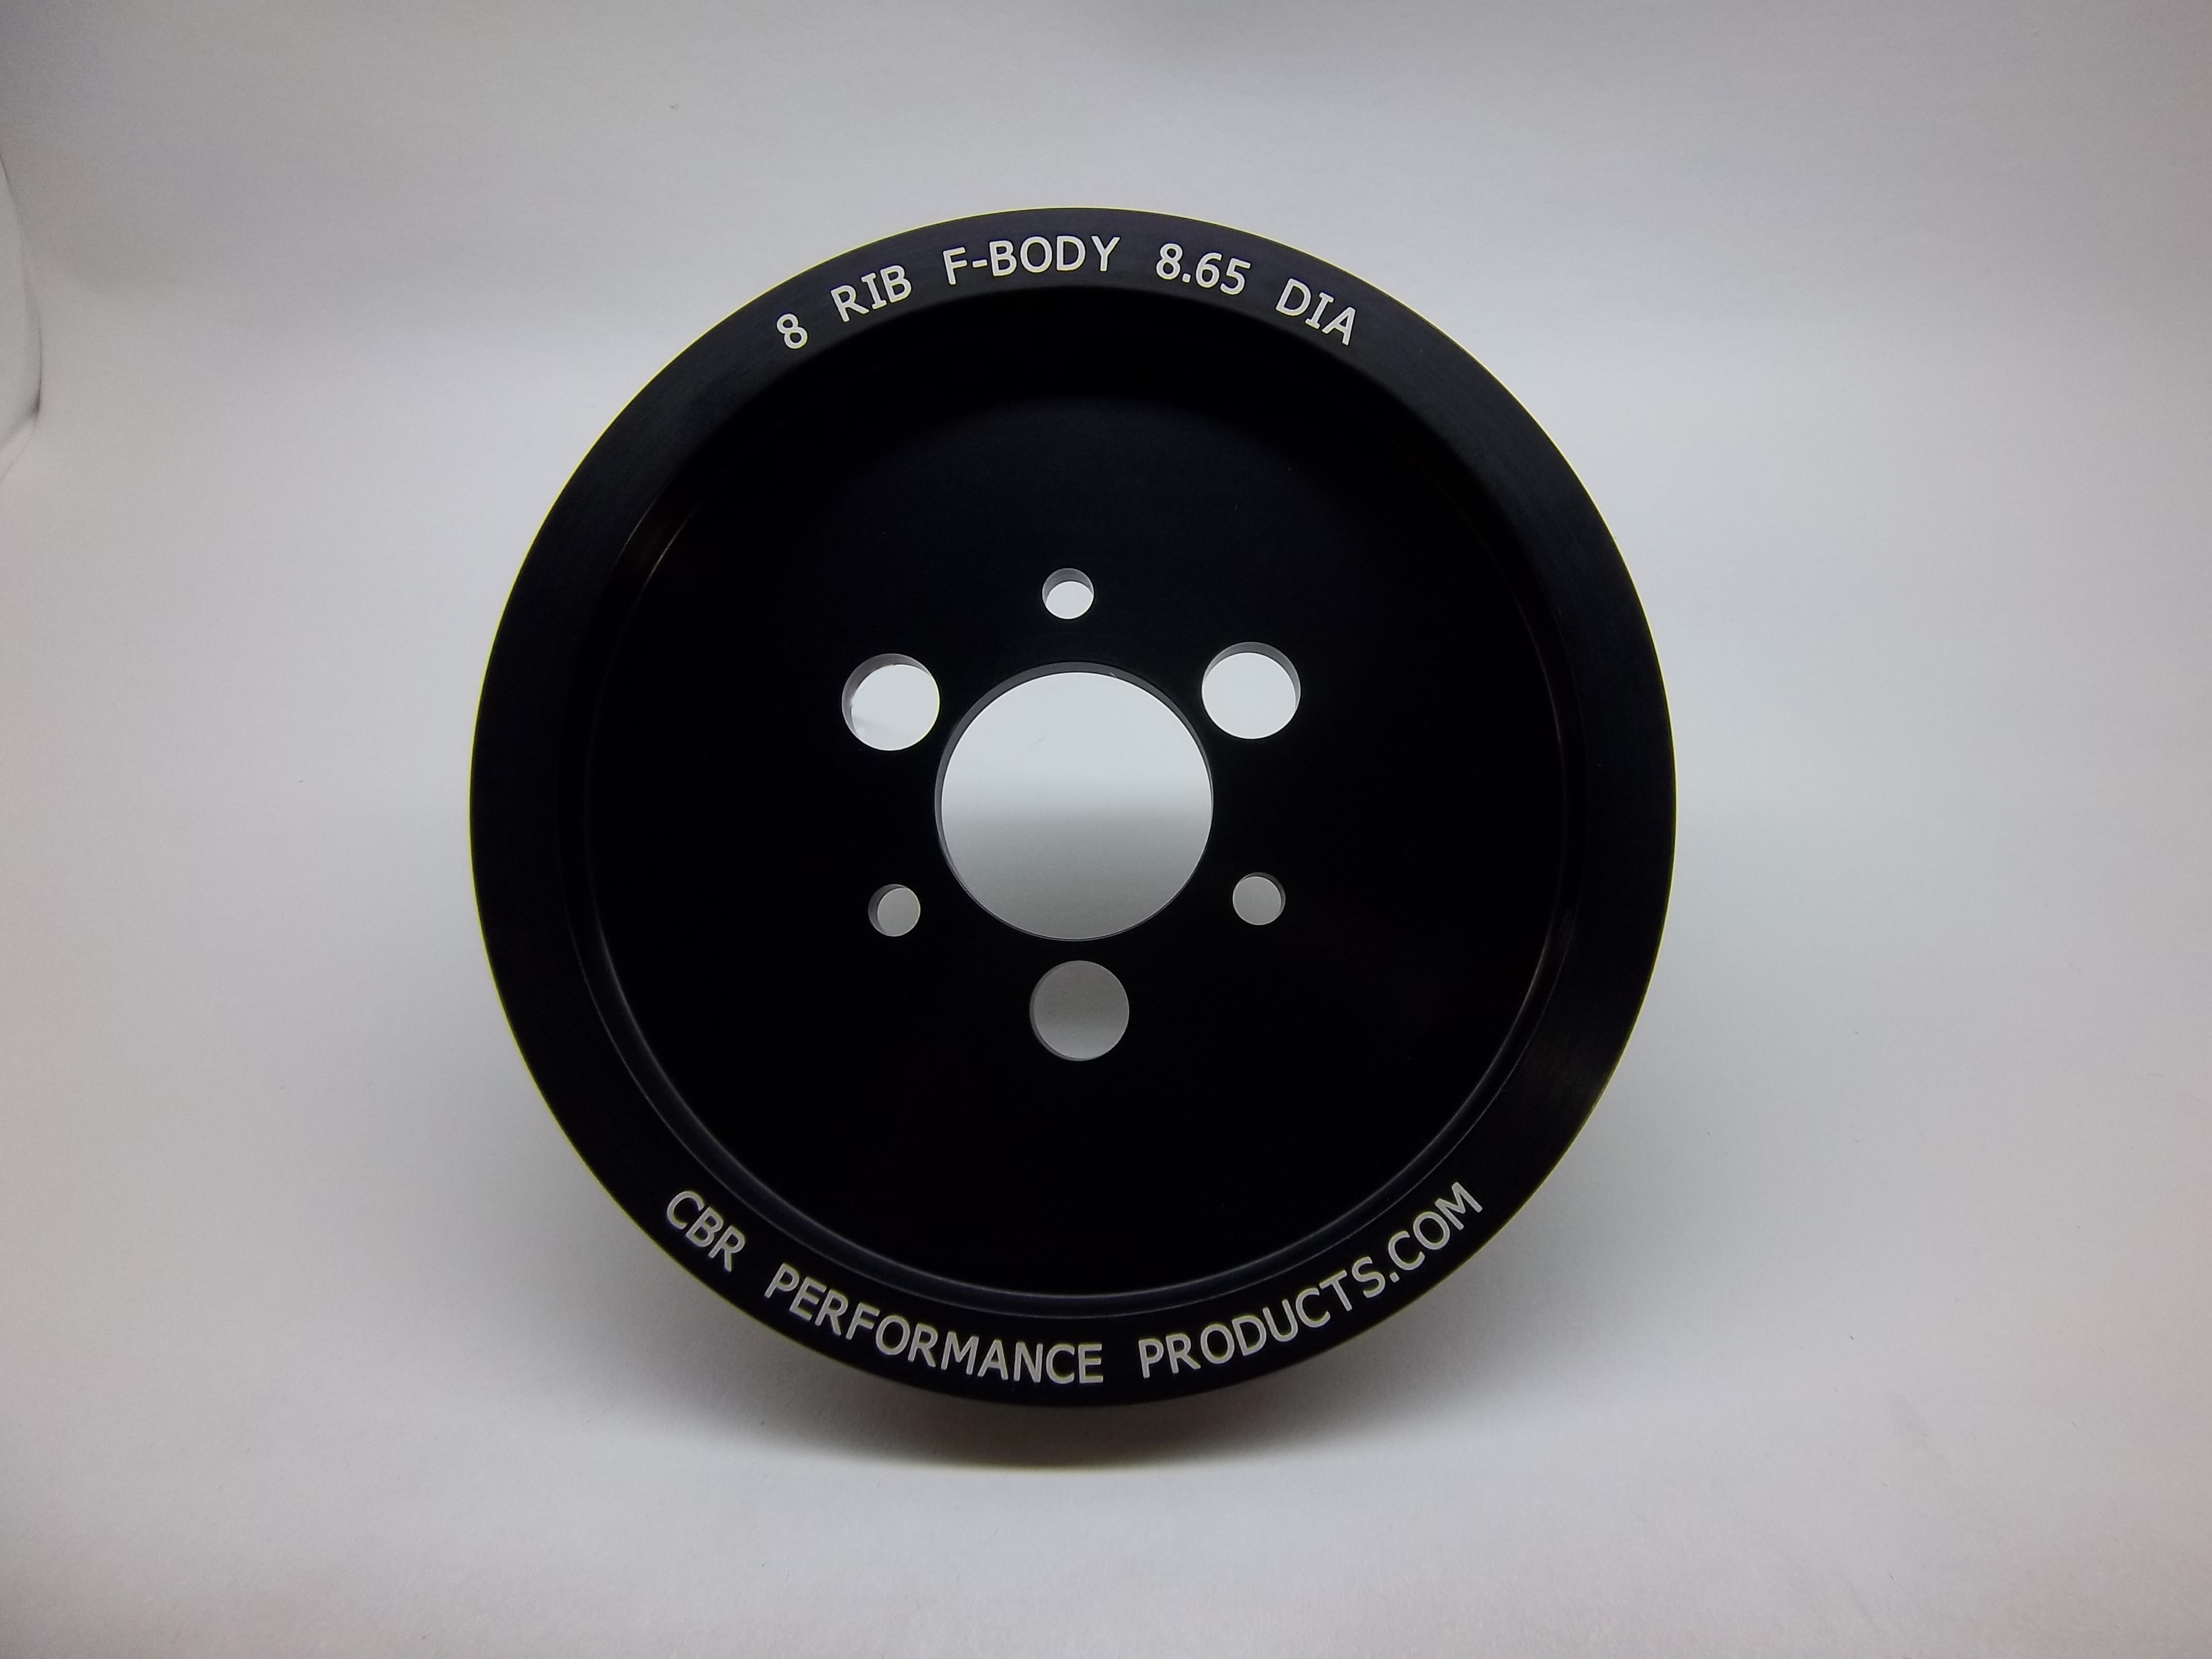 8Rib Super Charger Pulley 8 65 DIA